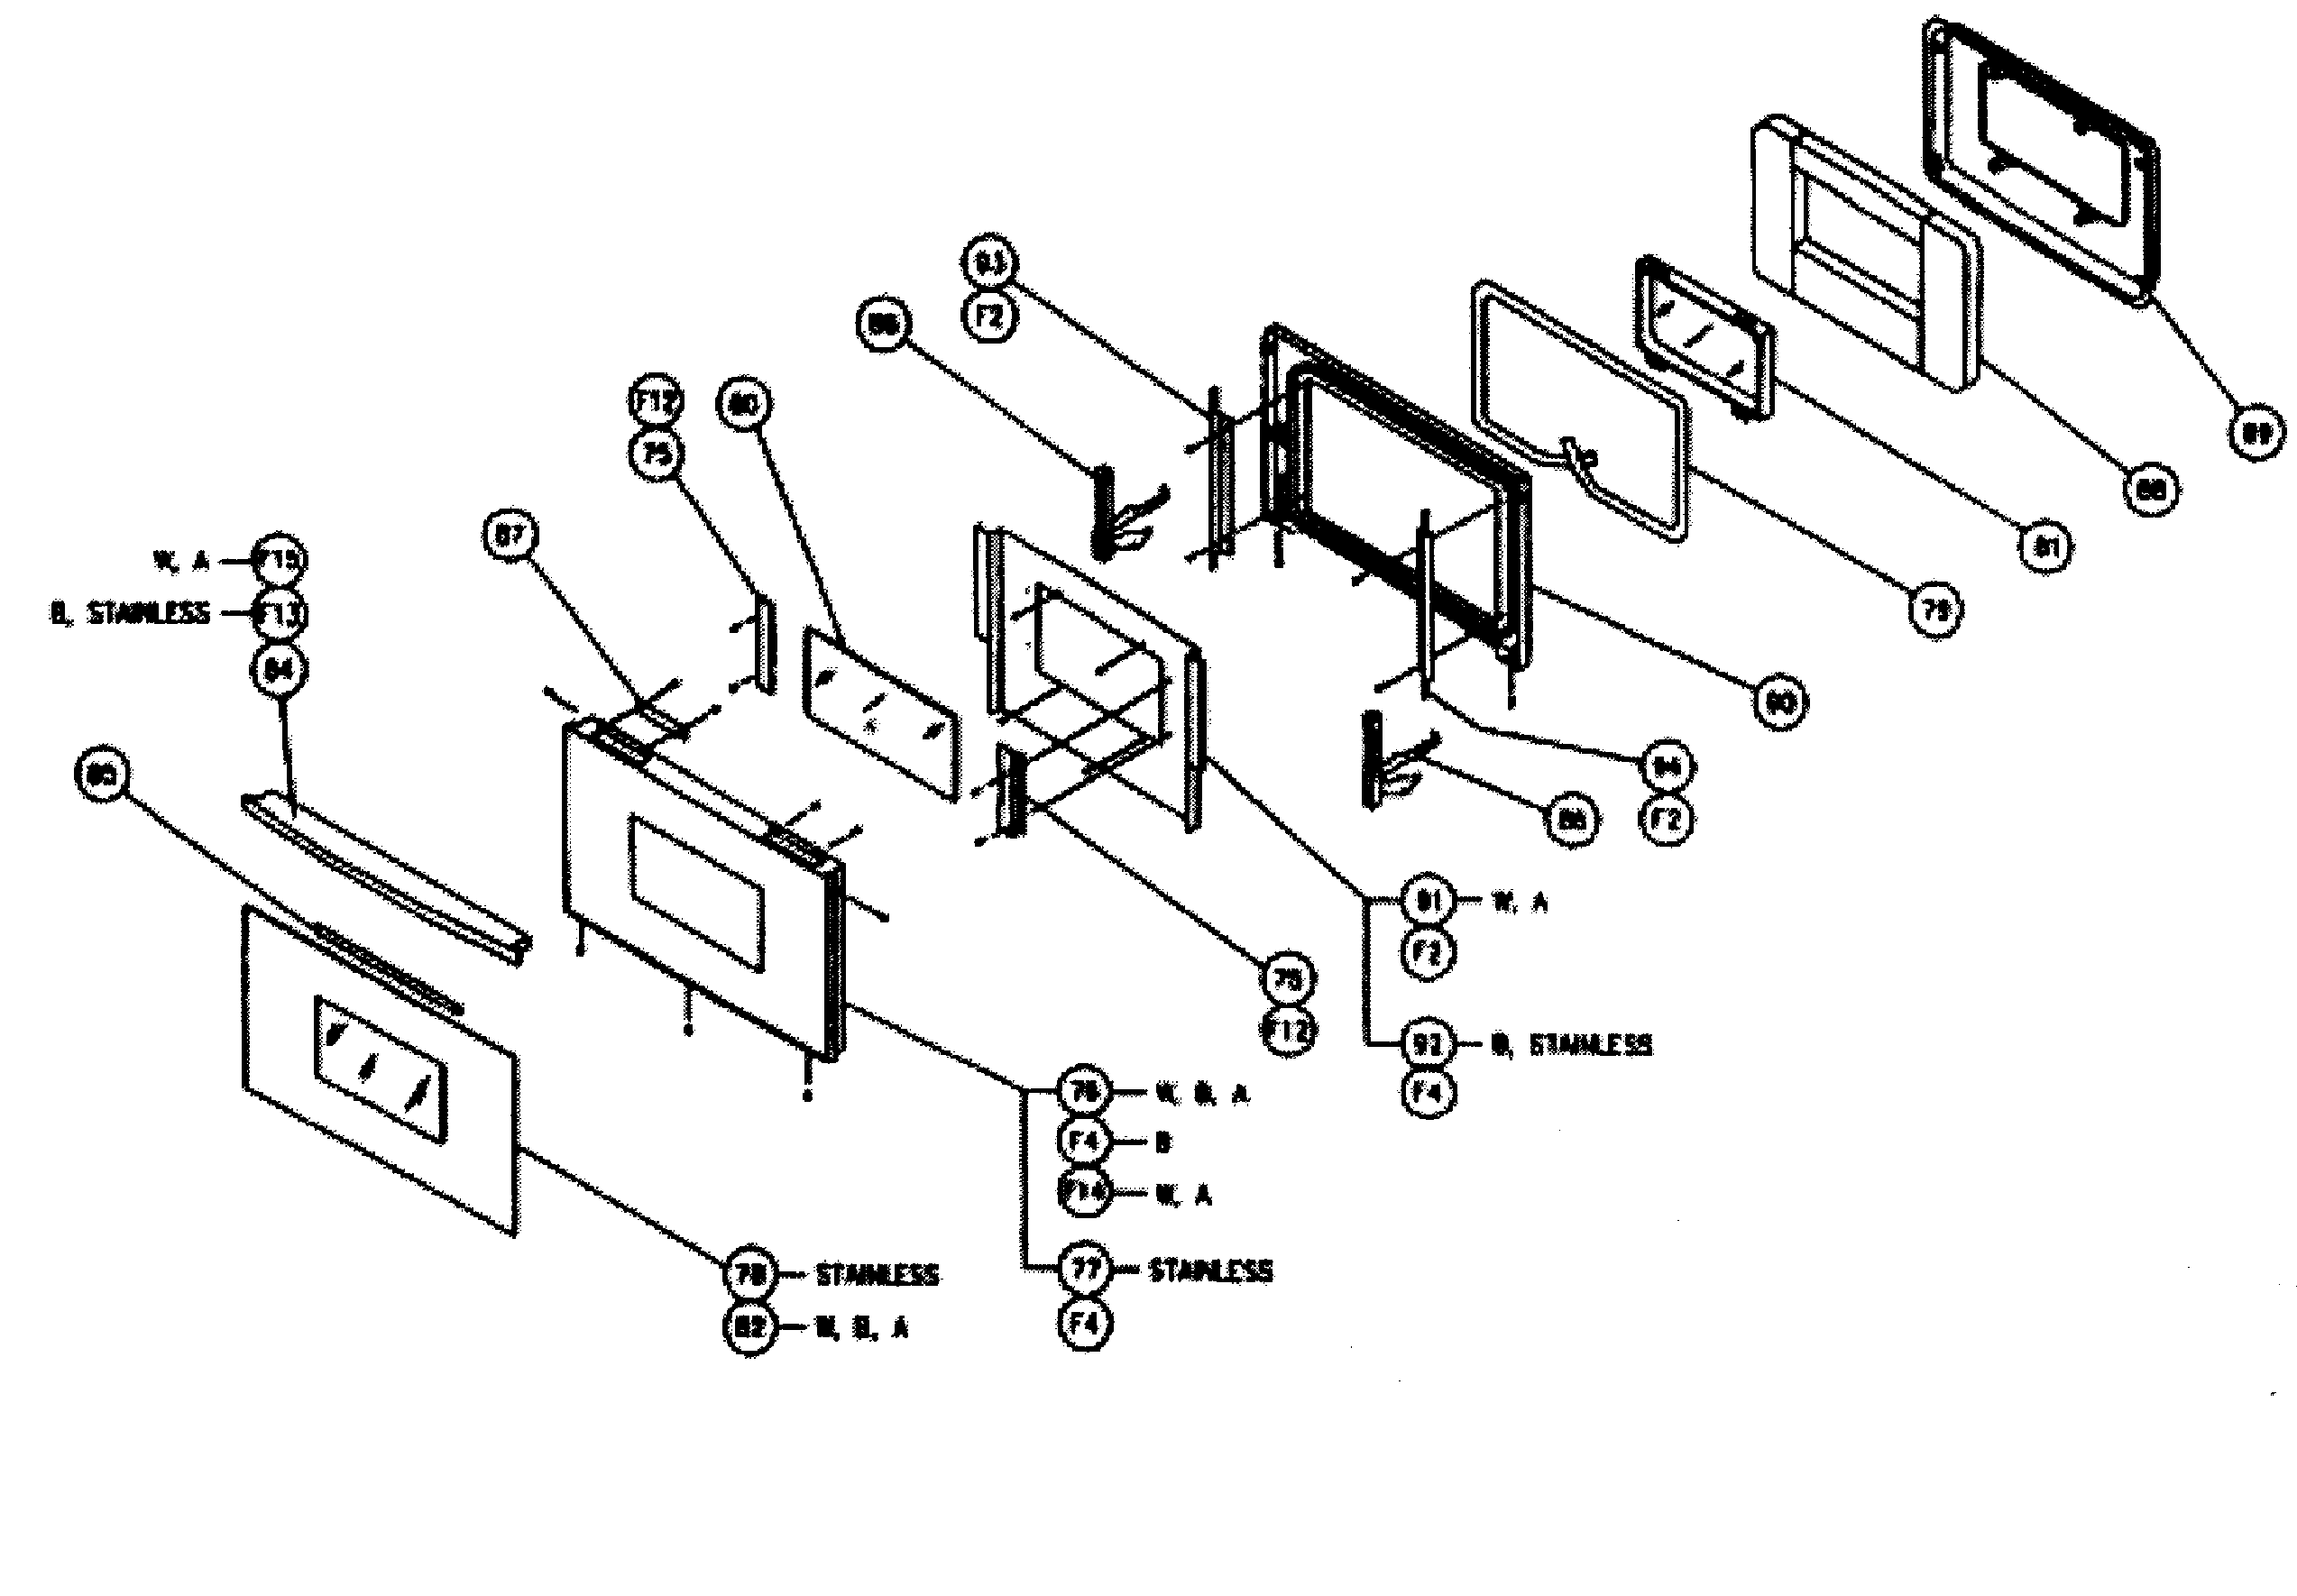 Cps230 oven door assy parts diagram